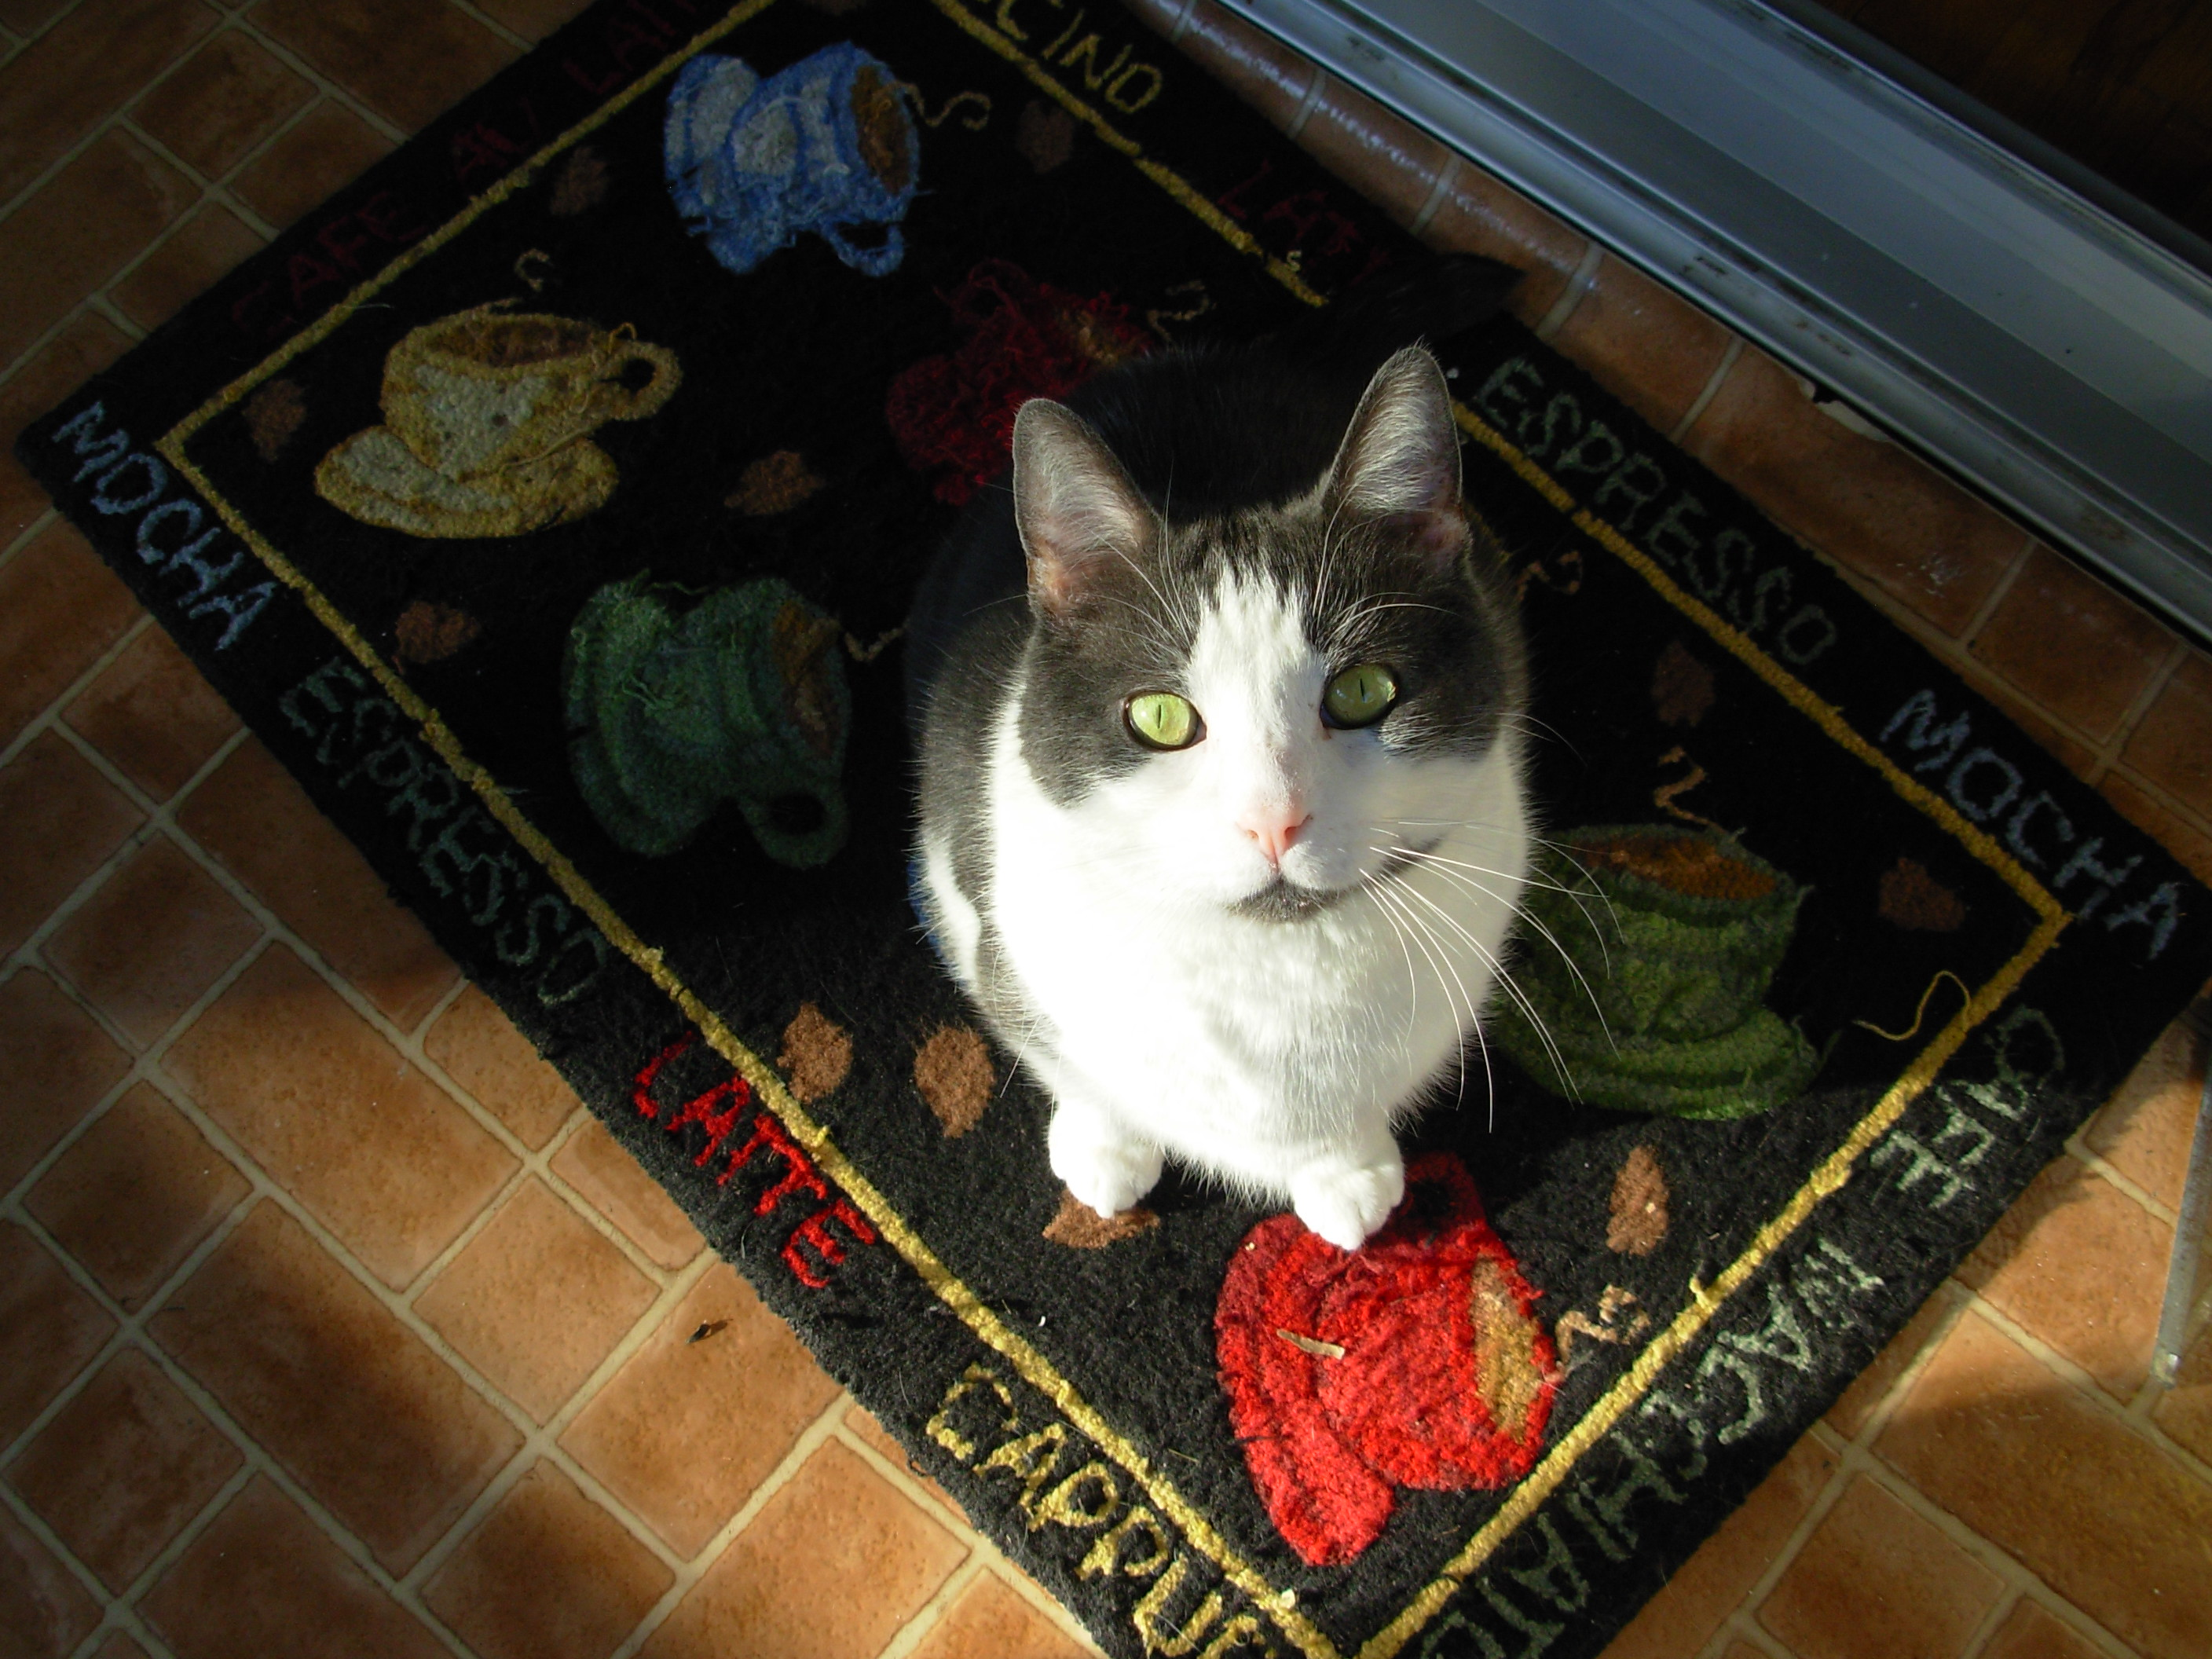 photo of cat with green eyes sitting on door mat